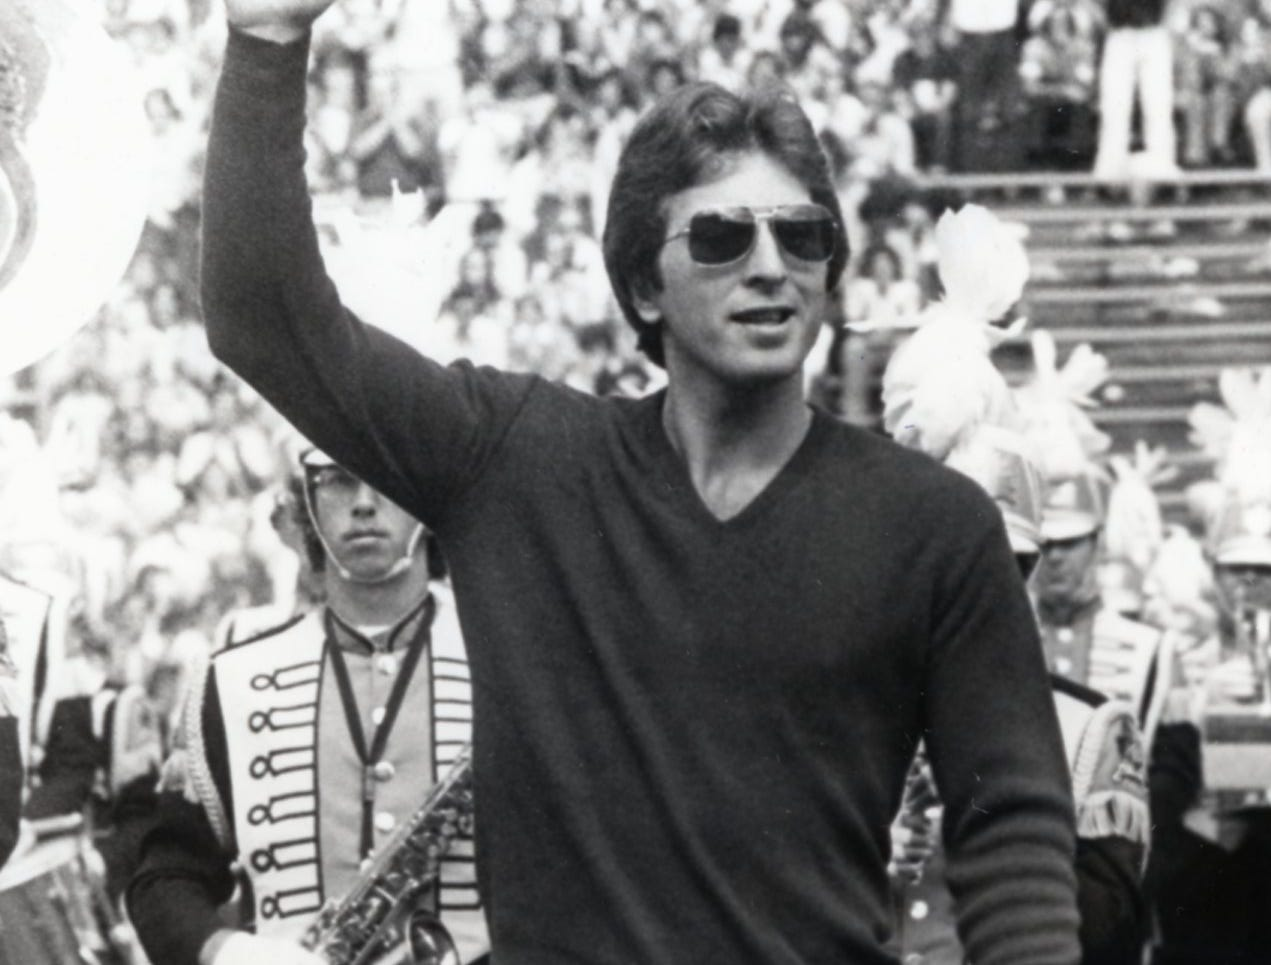 Ernie Grunfeld, member of the 1976 Olympic gold medal winning basketball team was honored at halftime of the October 6, 1976 UT football game.